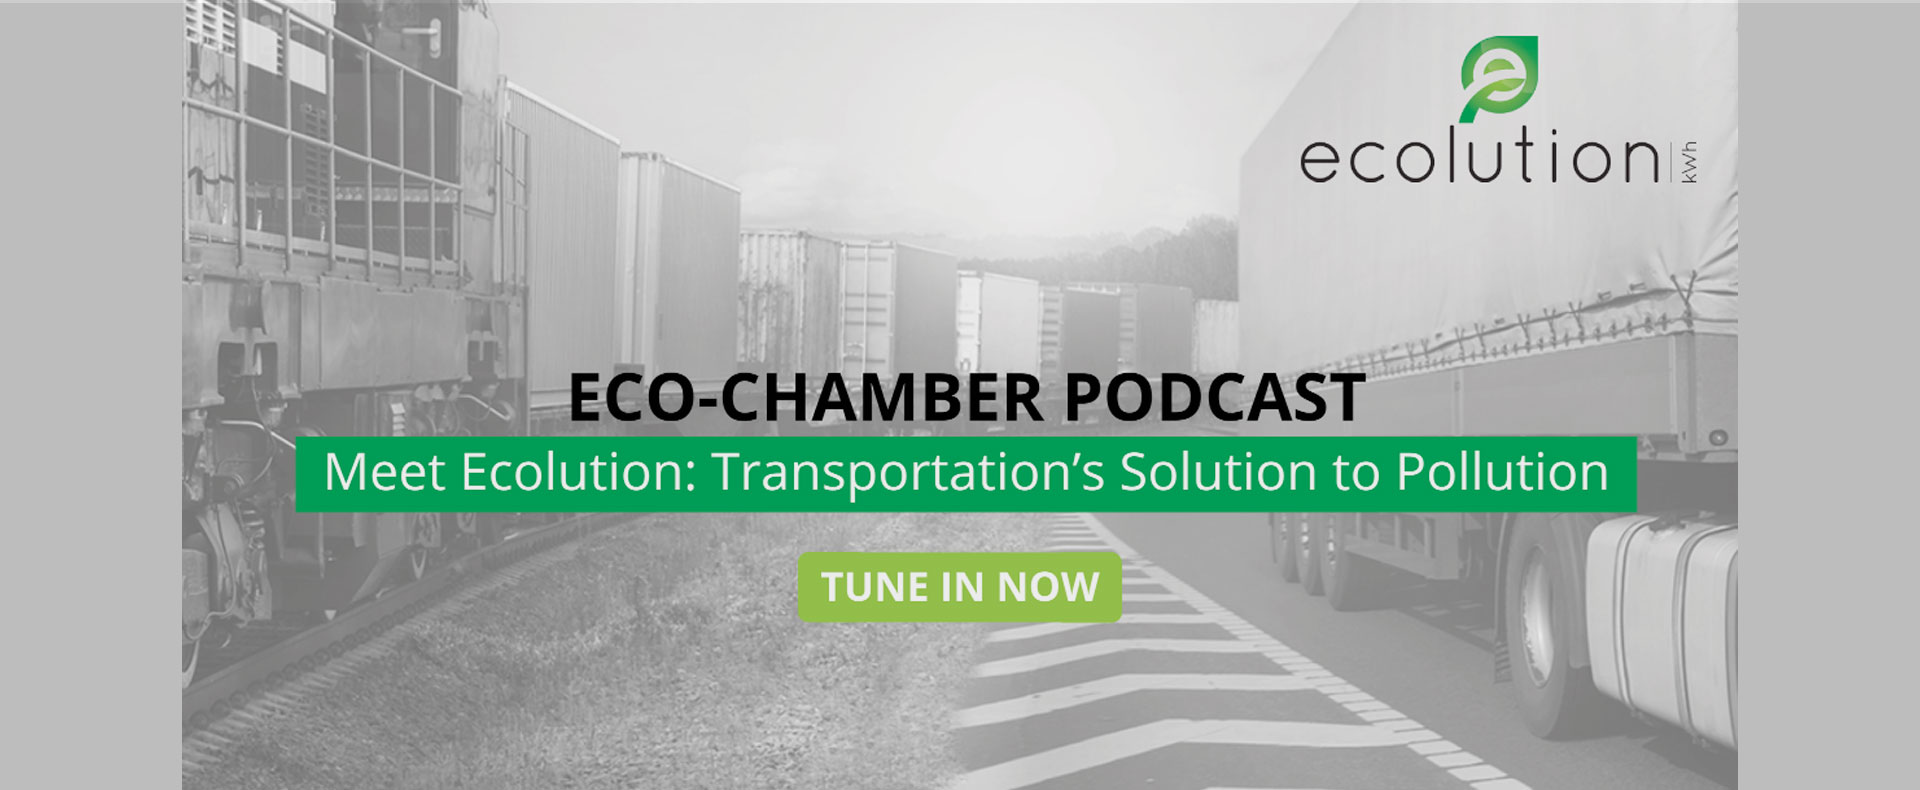 Meet Ecolution: Transportation's Solution to Pollution